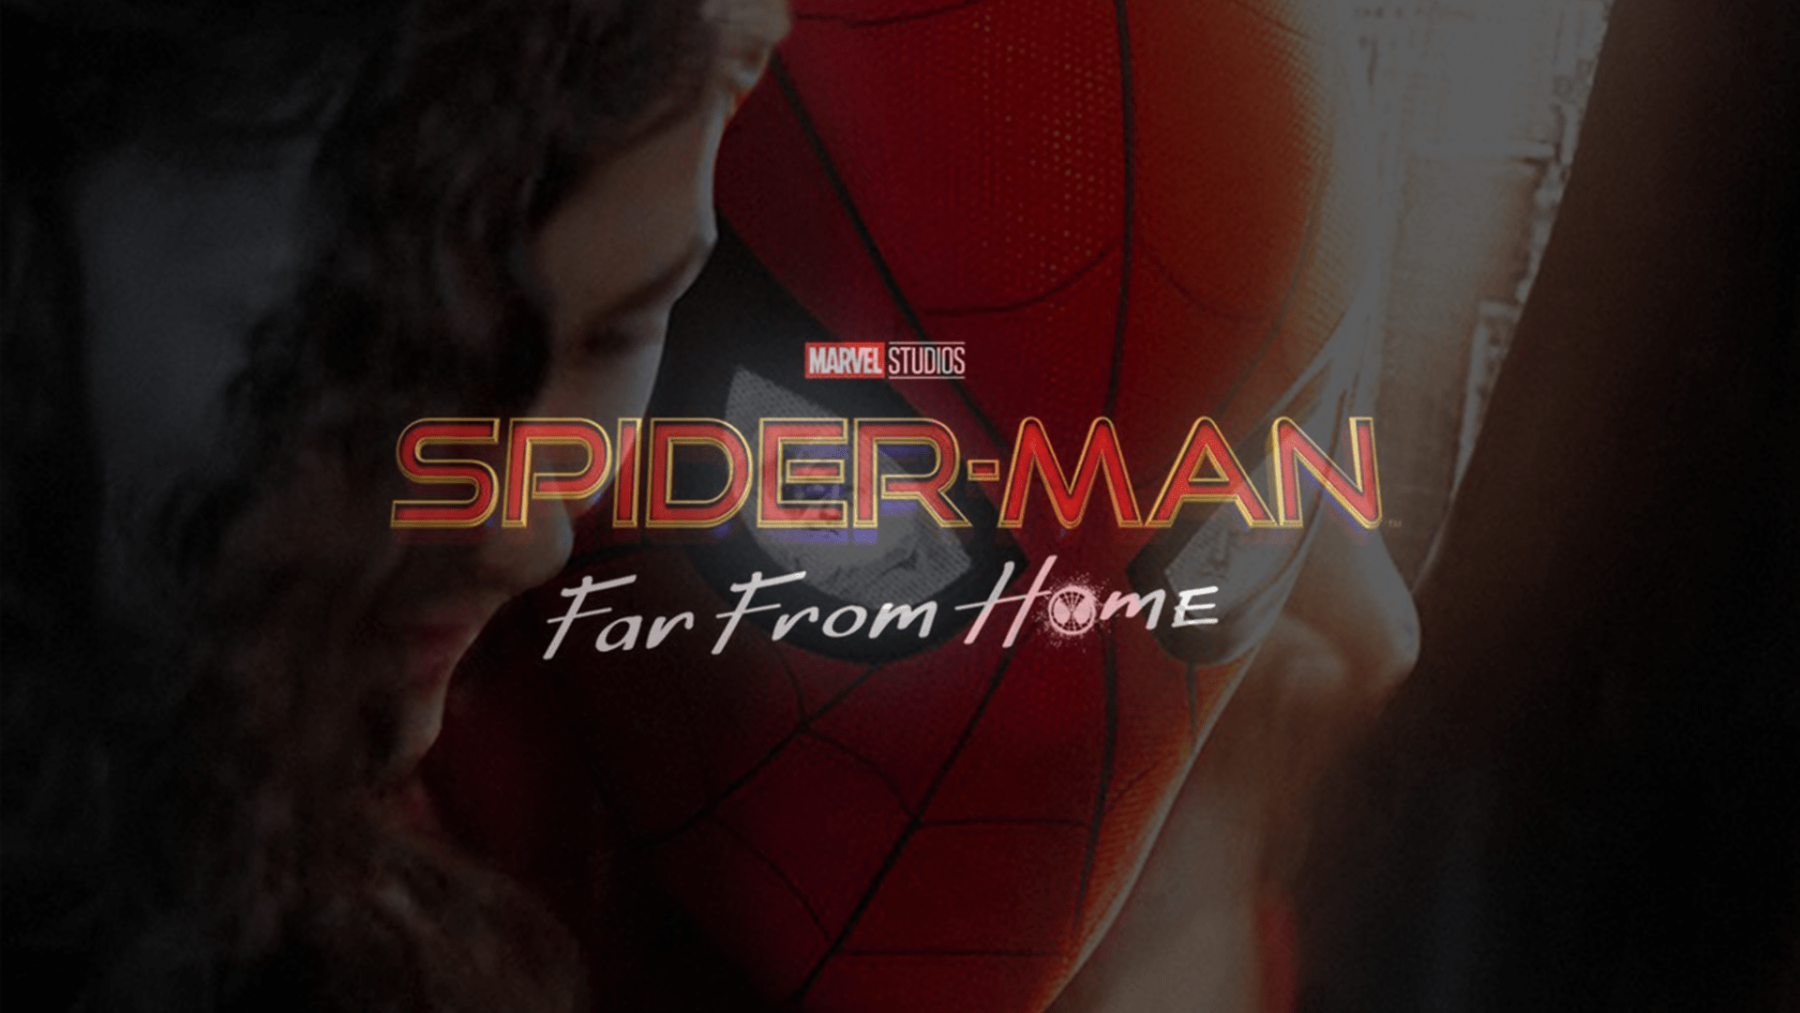 Spider Man Far From Home Hd Wallpapers 7wallpapers Net